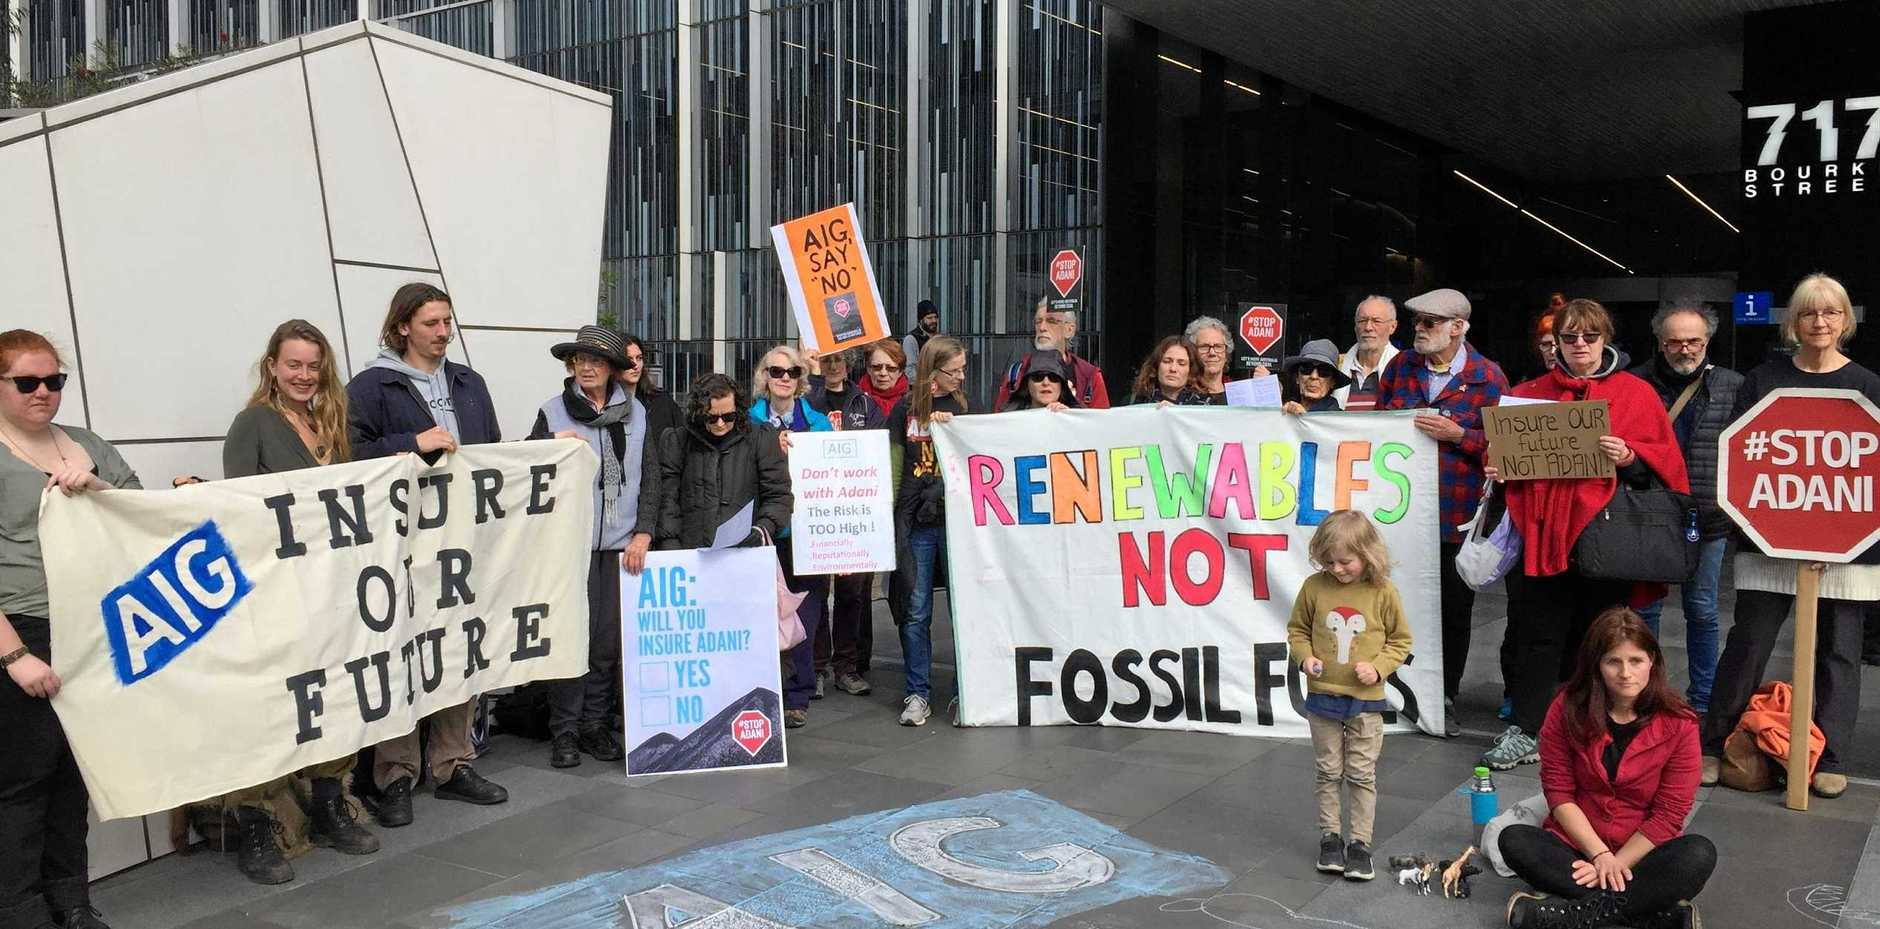 PROTEST: Green activists at AIG's offices